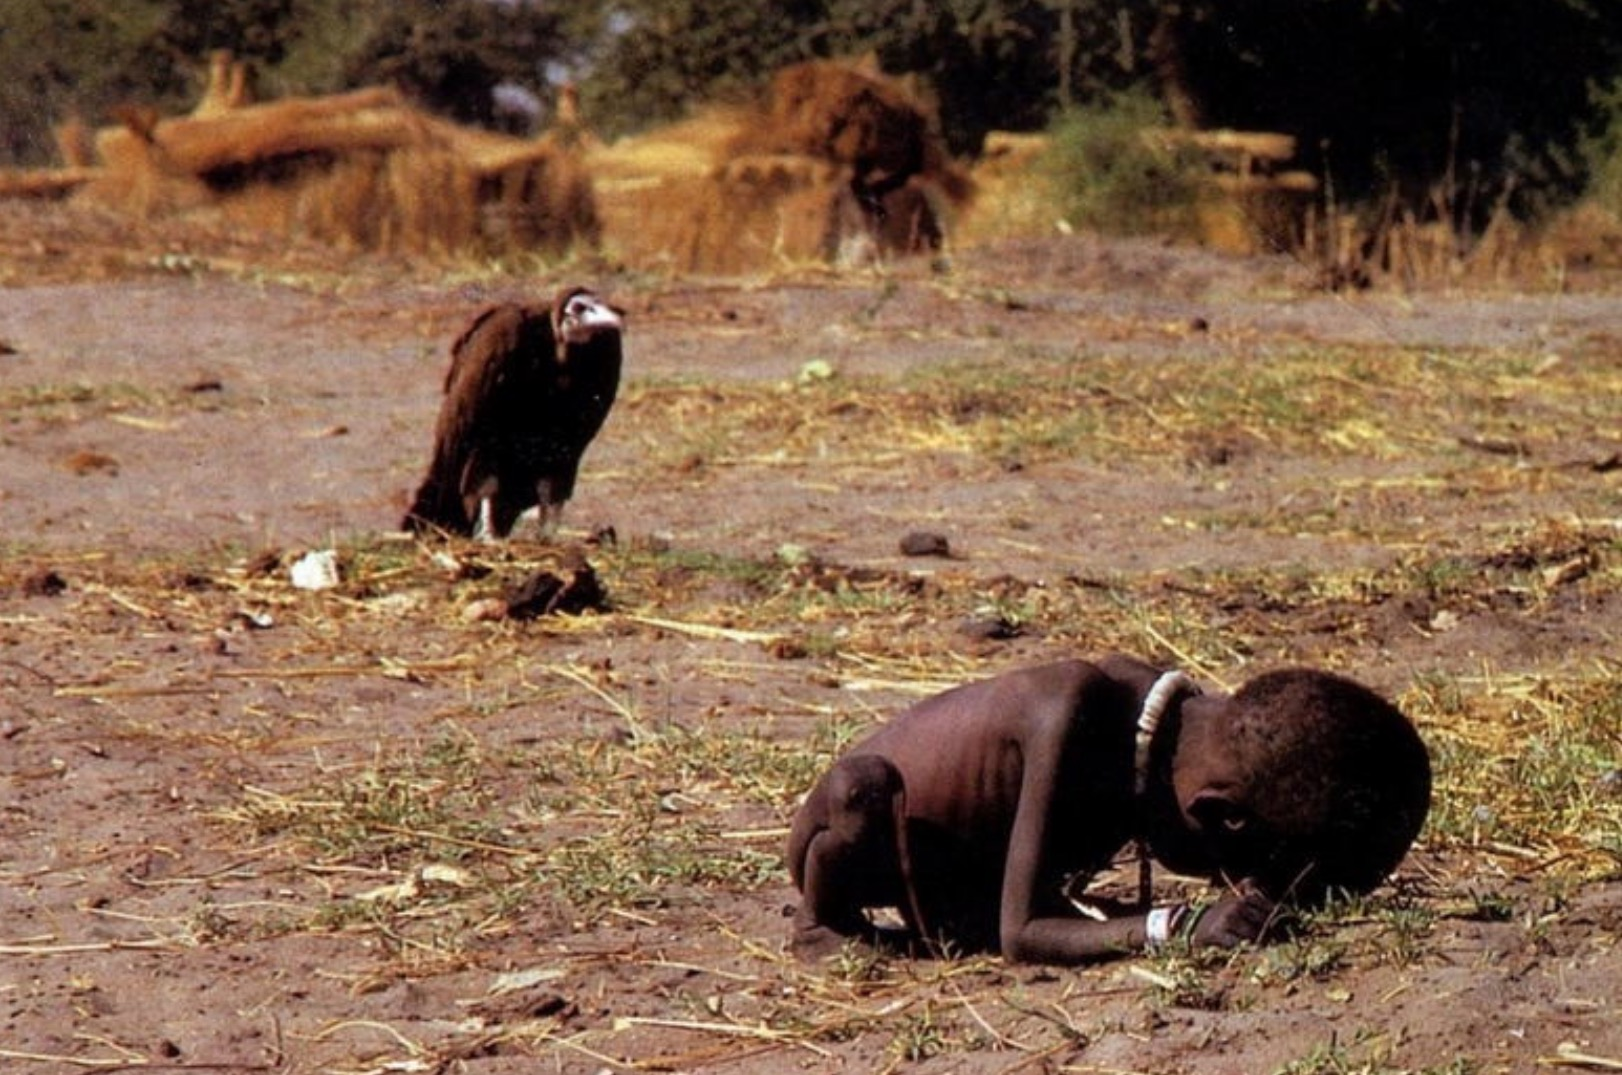 Pulitzer Prize Winning Photo by Kevin Carter